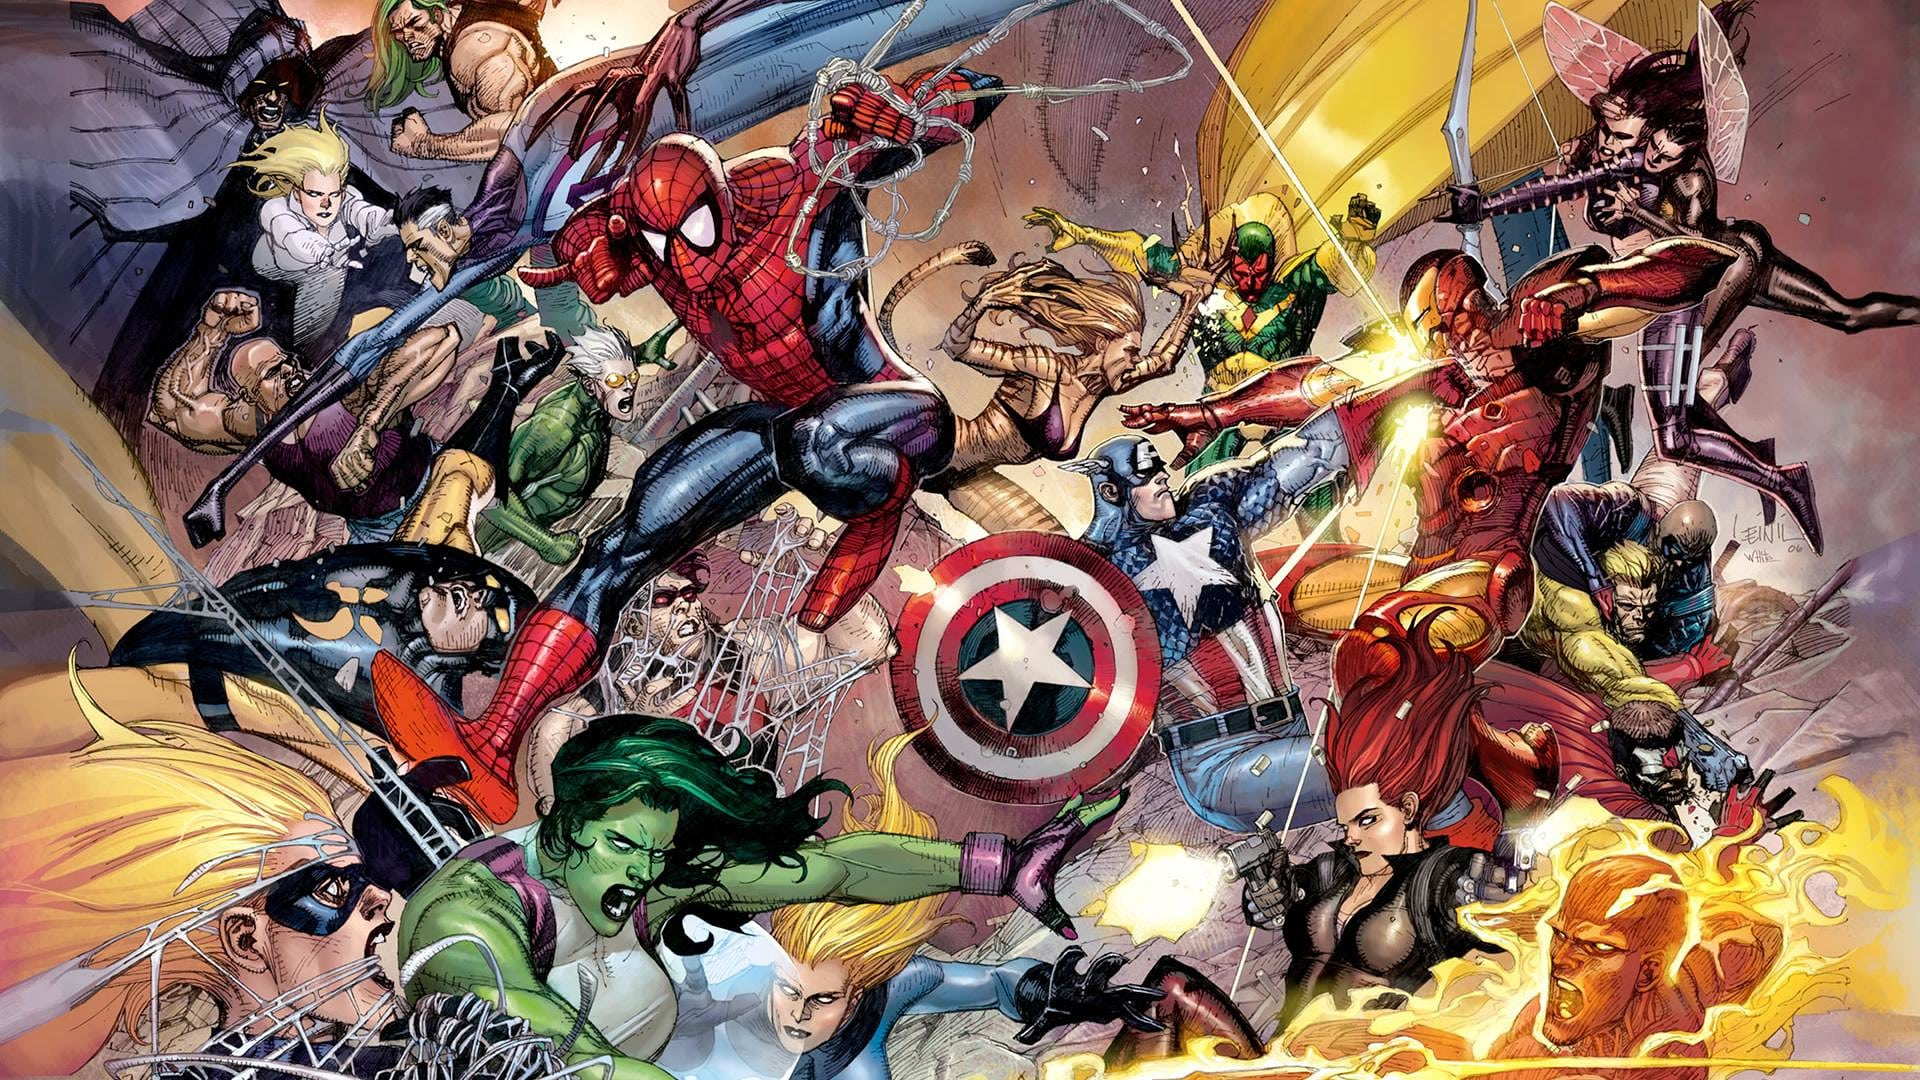 why-the-end-of-the-marvel-universe-is-not-turning-the-comics-into-the-mcu-40094b86-1b84-4206-a6d3-1a0ad54257e3-jpeg-272938